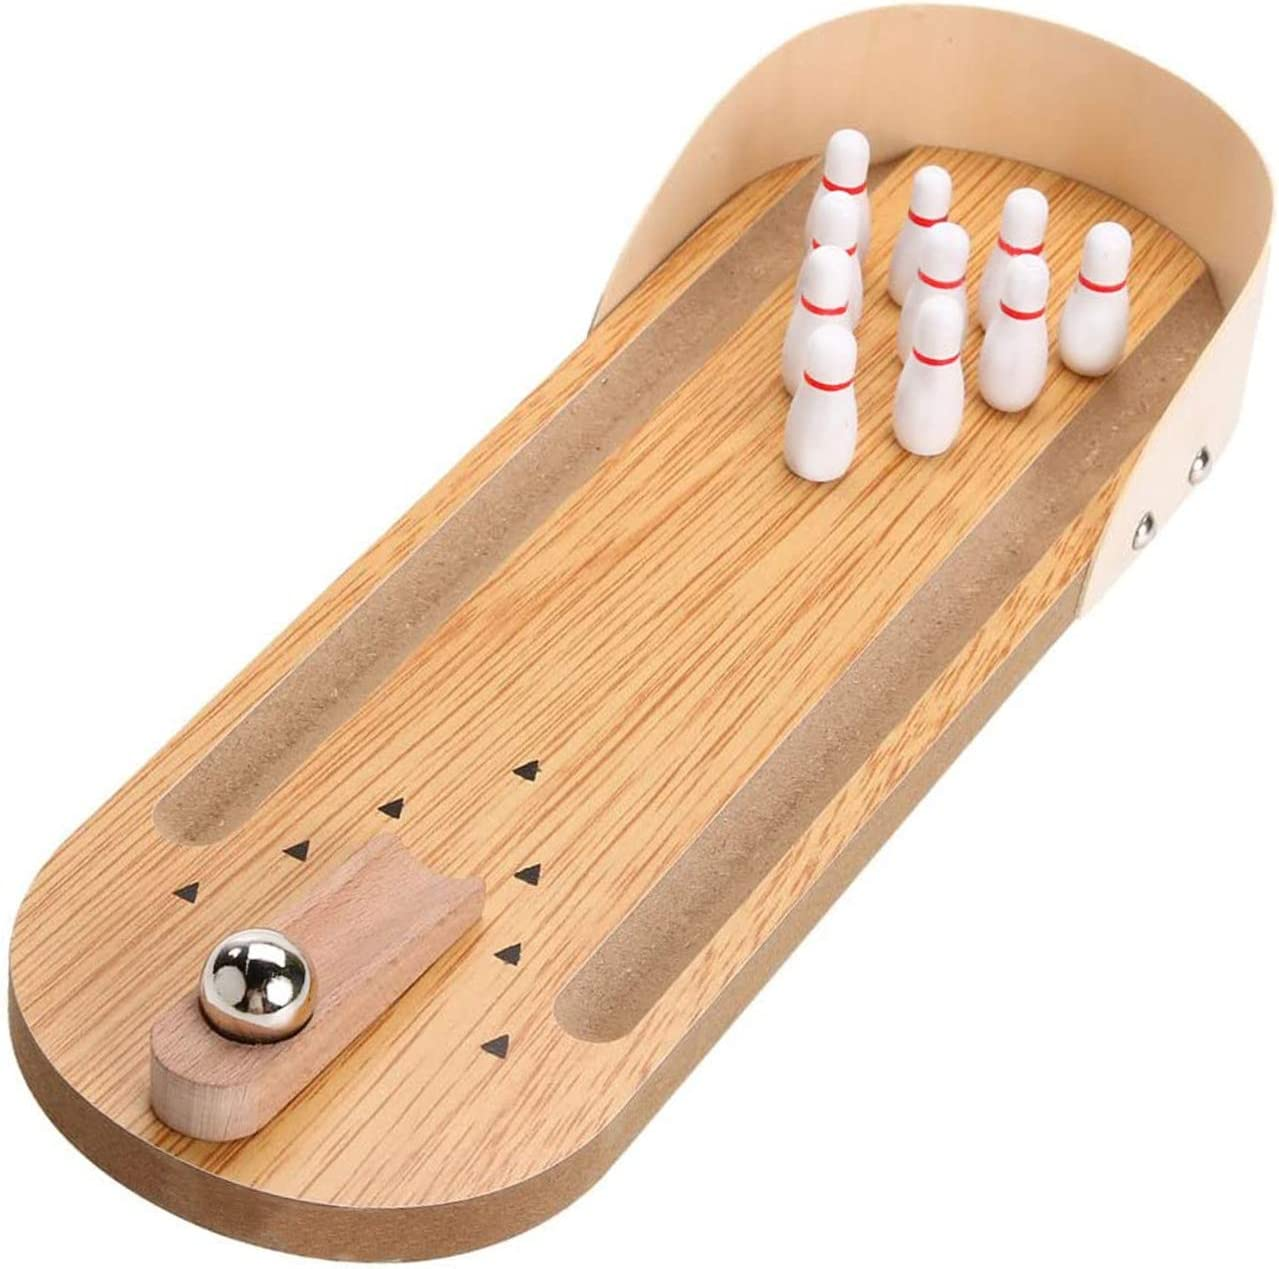 Desk Games Desktop Mini Bowling Set Toy - Unique Funny Office Gifts - Cool Novelty Wooden Tabletop Skittles Board Game - Family Fun for Kids Adults Men Coworkers Cute Finger Sports Bird Trick Training